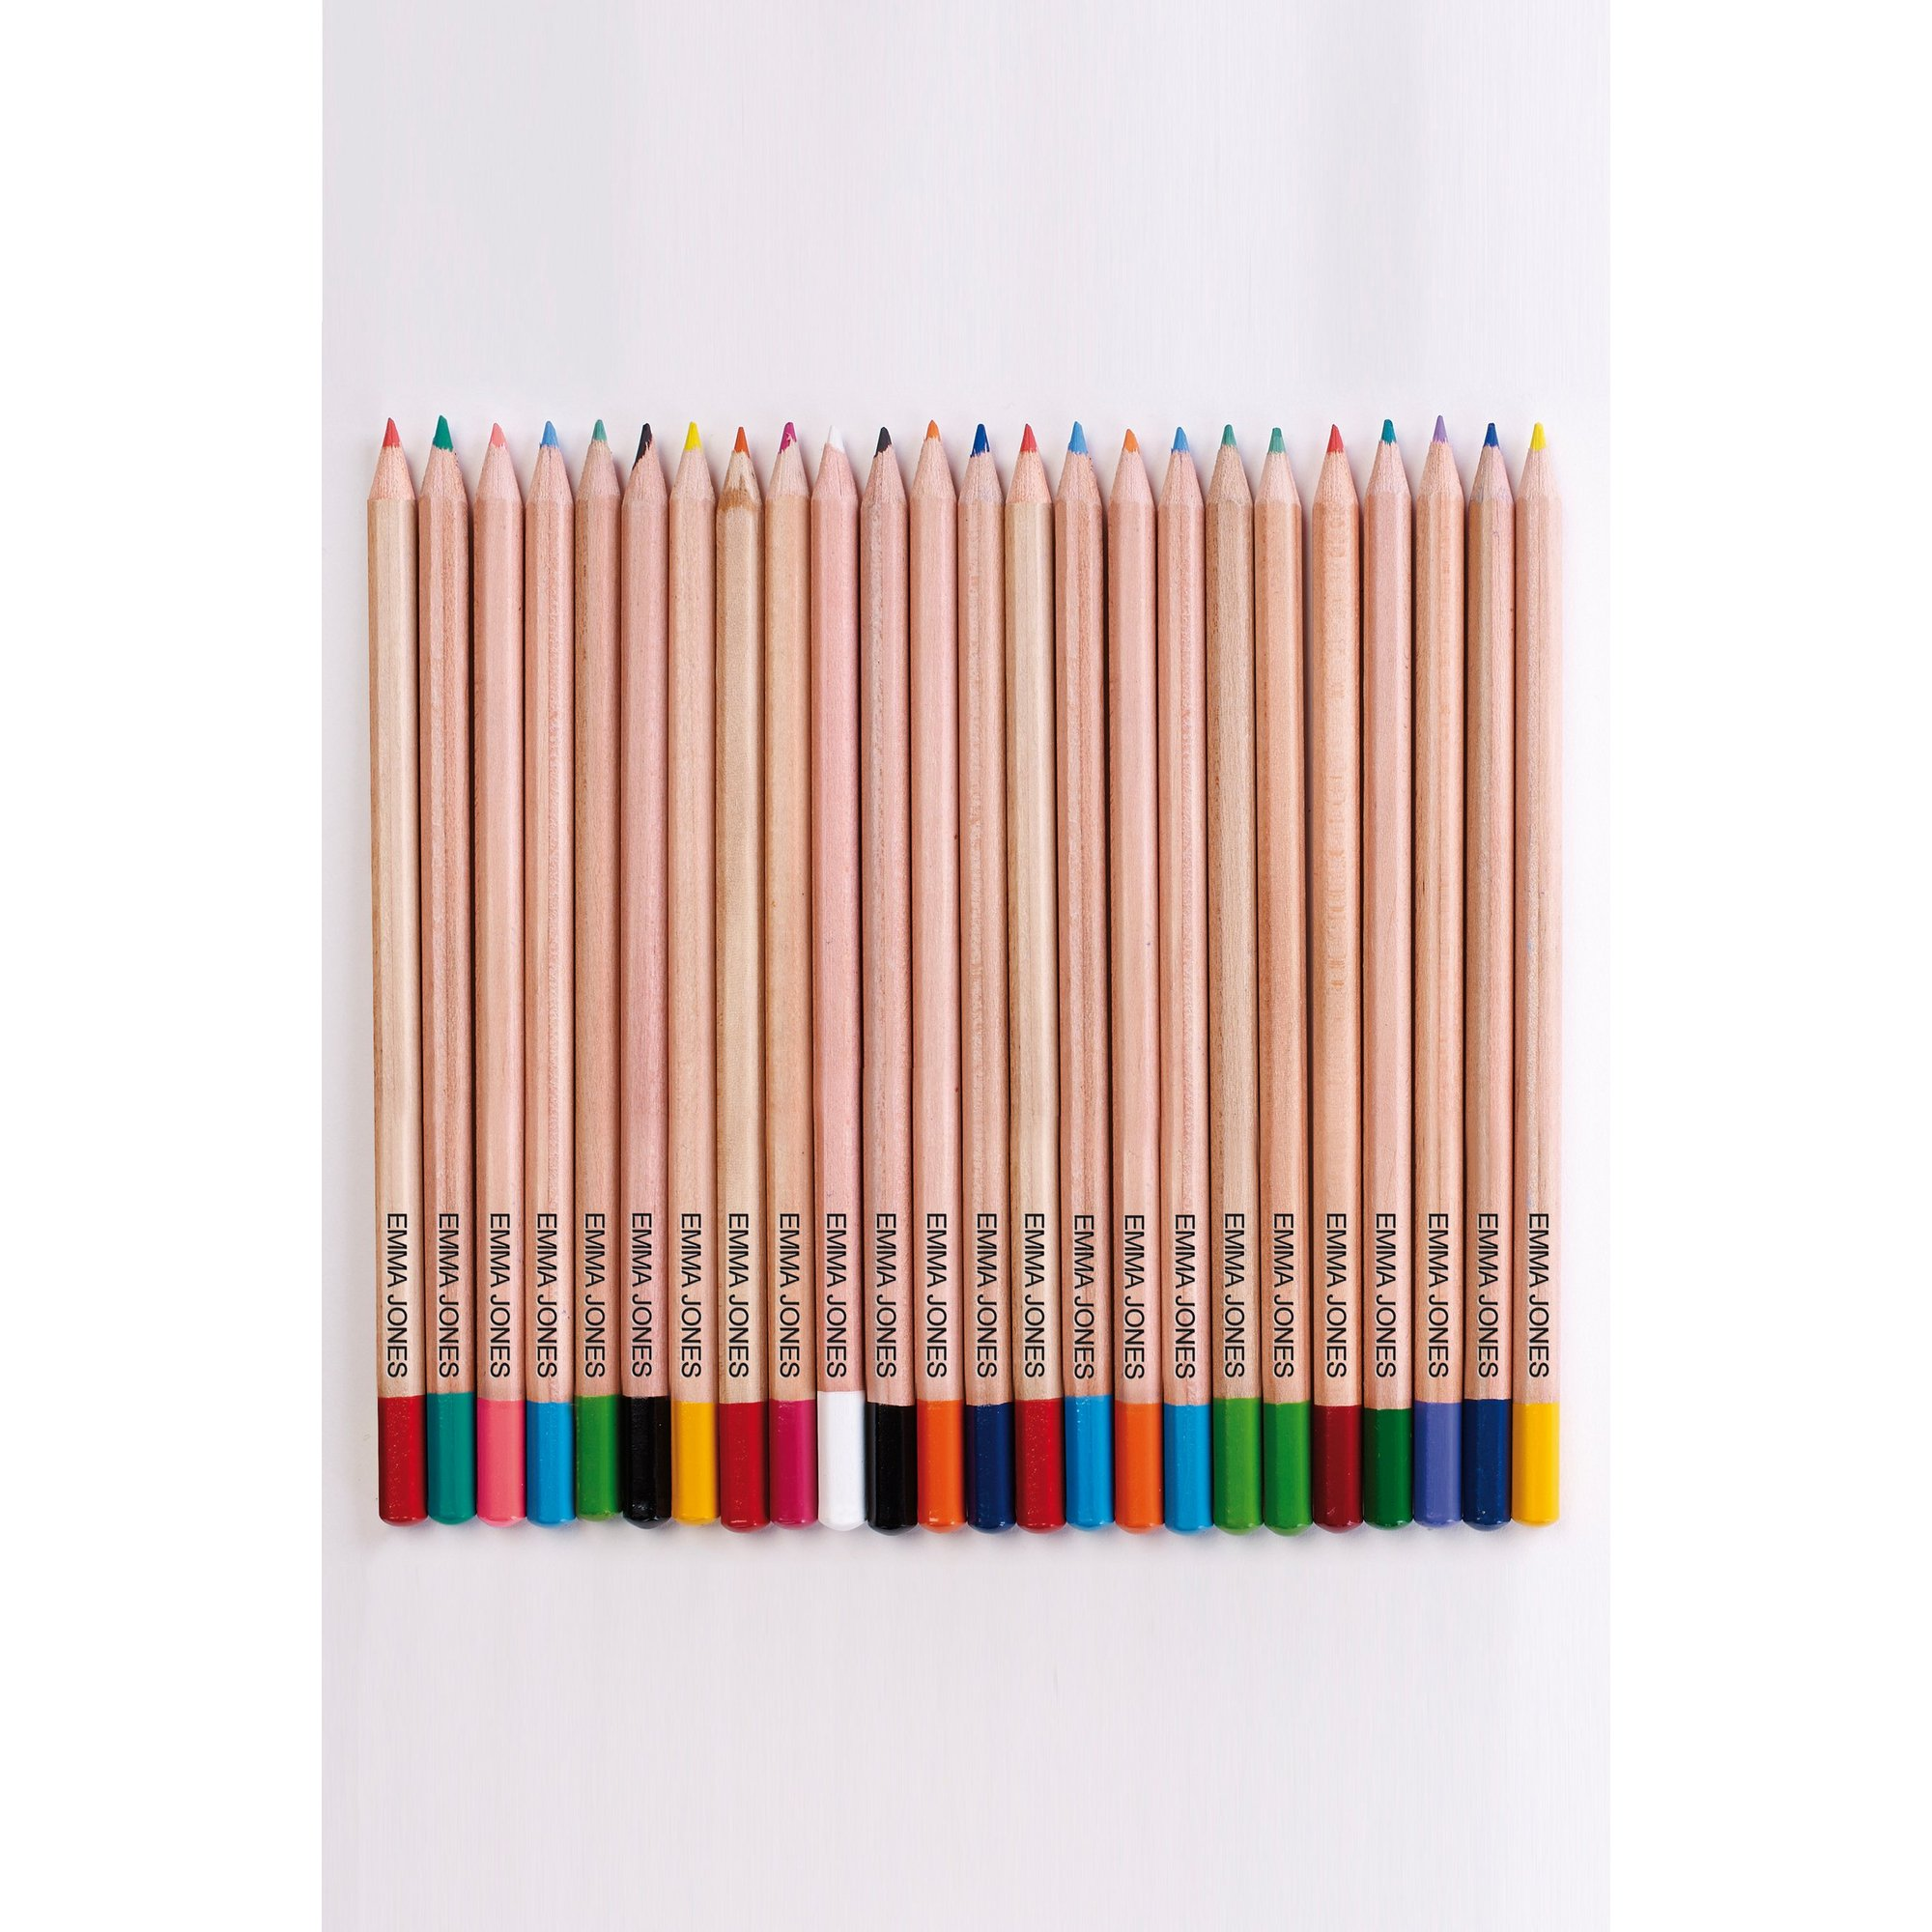 Image of Pack of Personalised Coloured Pencils